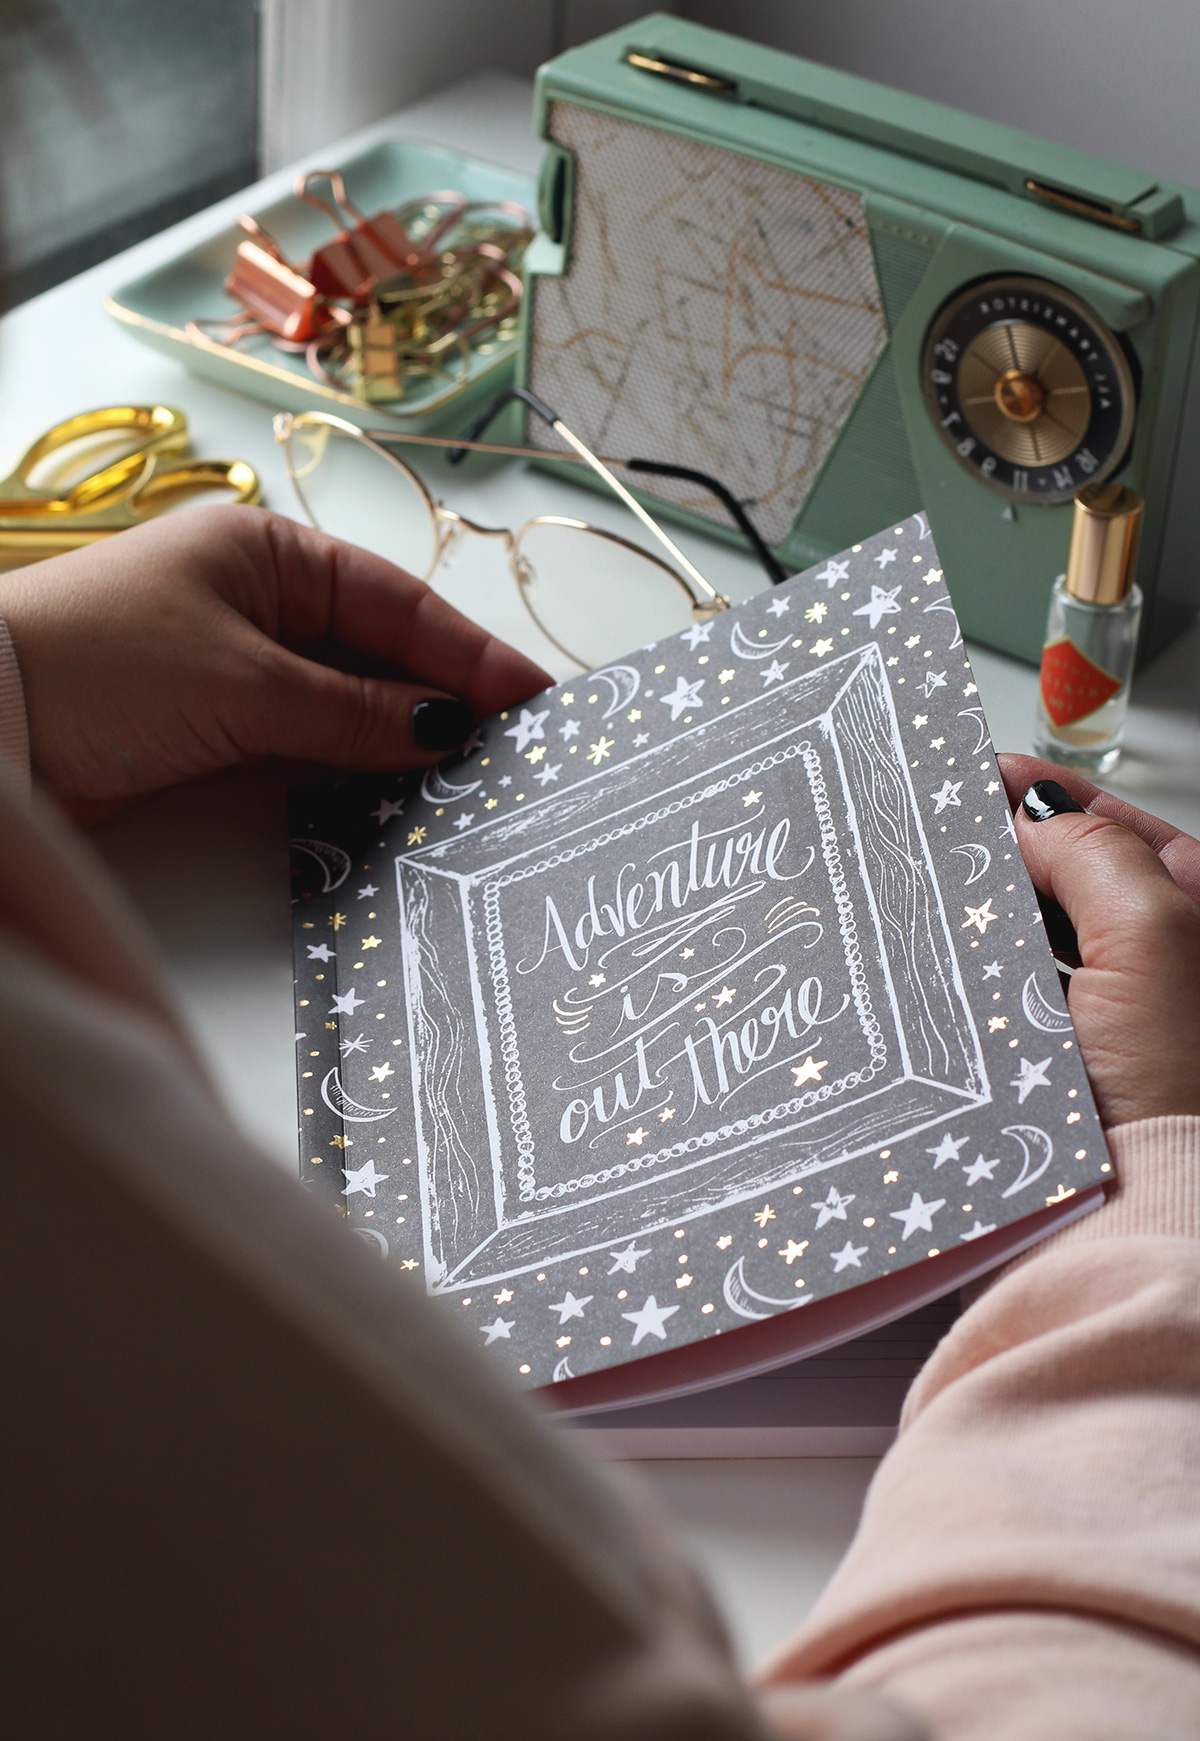 Adventure is out there journal! The stars sparkle with gold foil